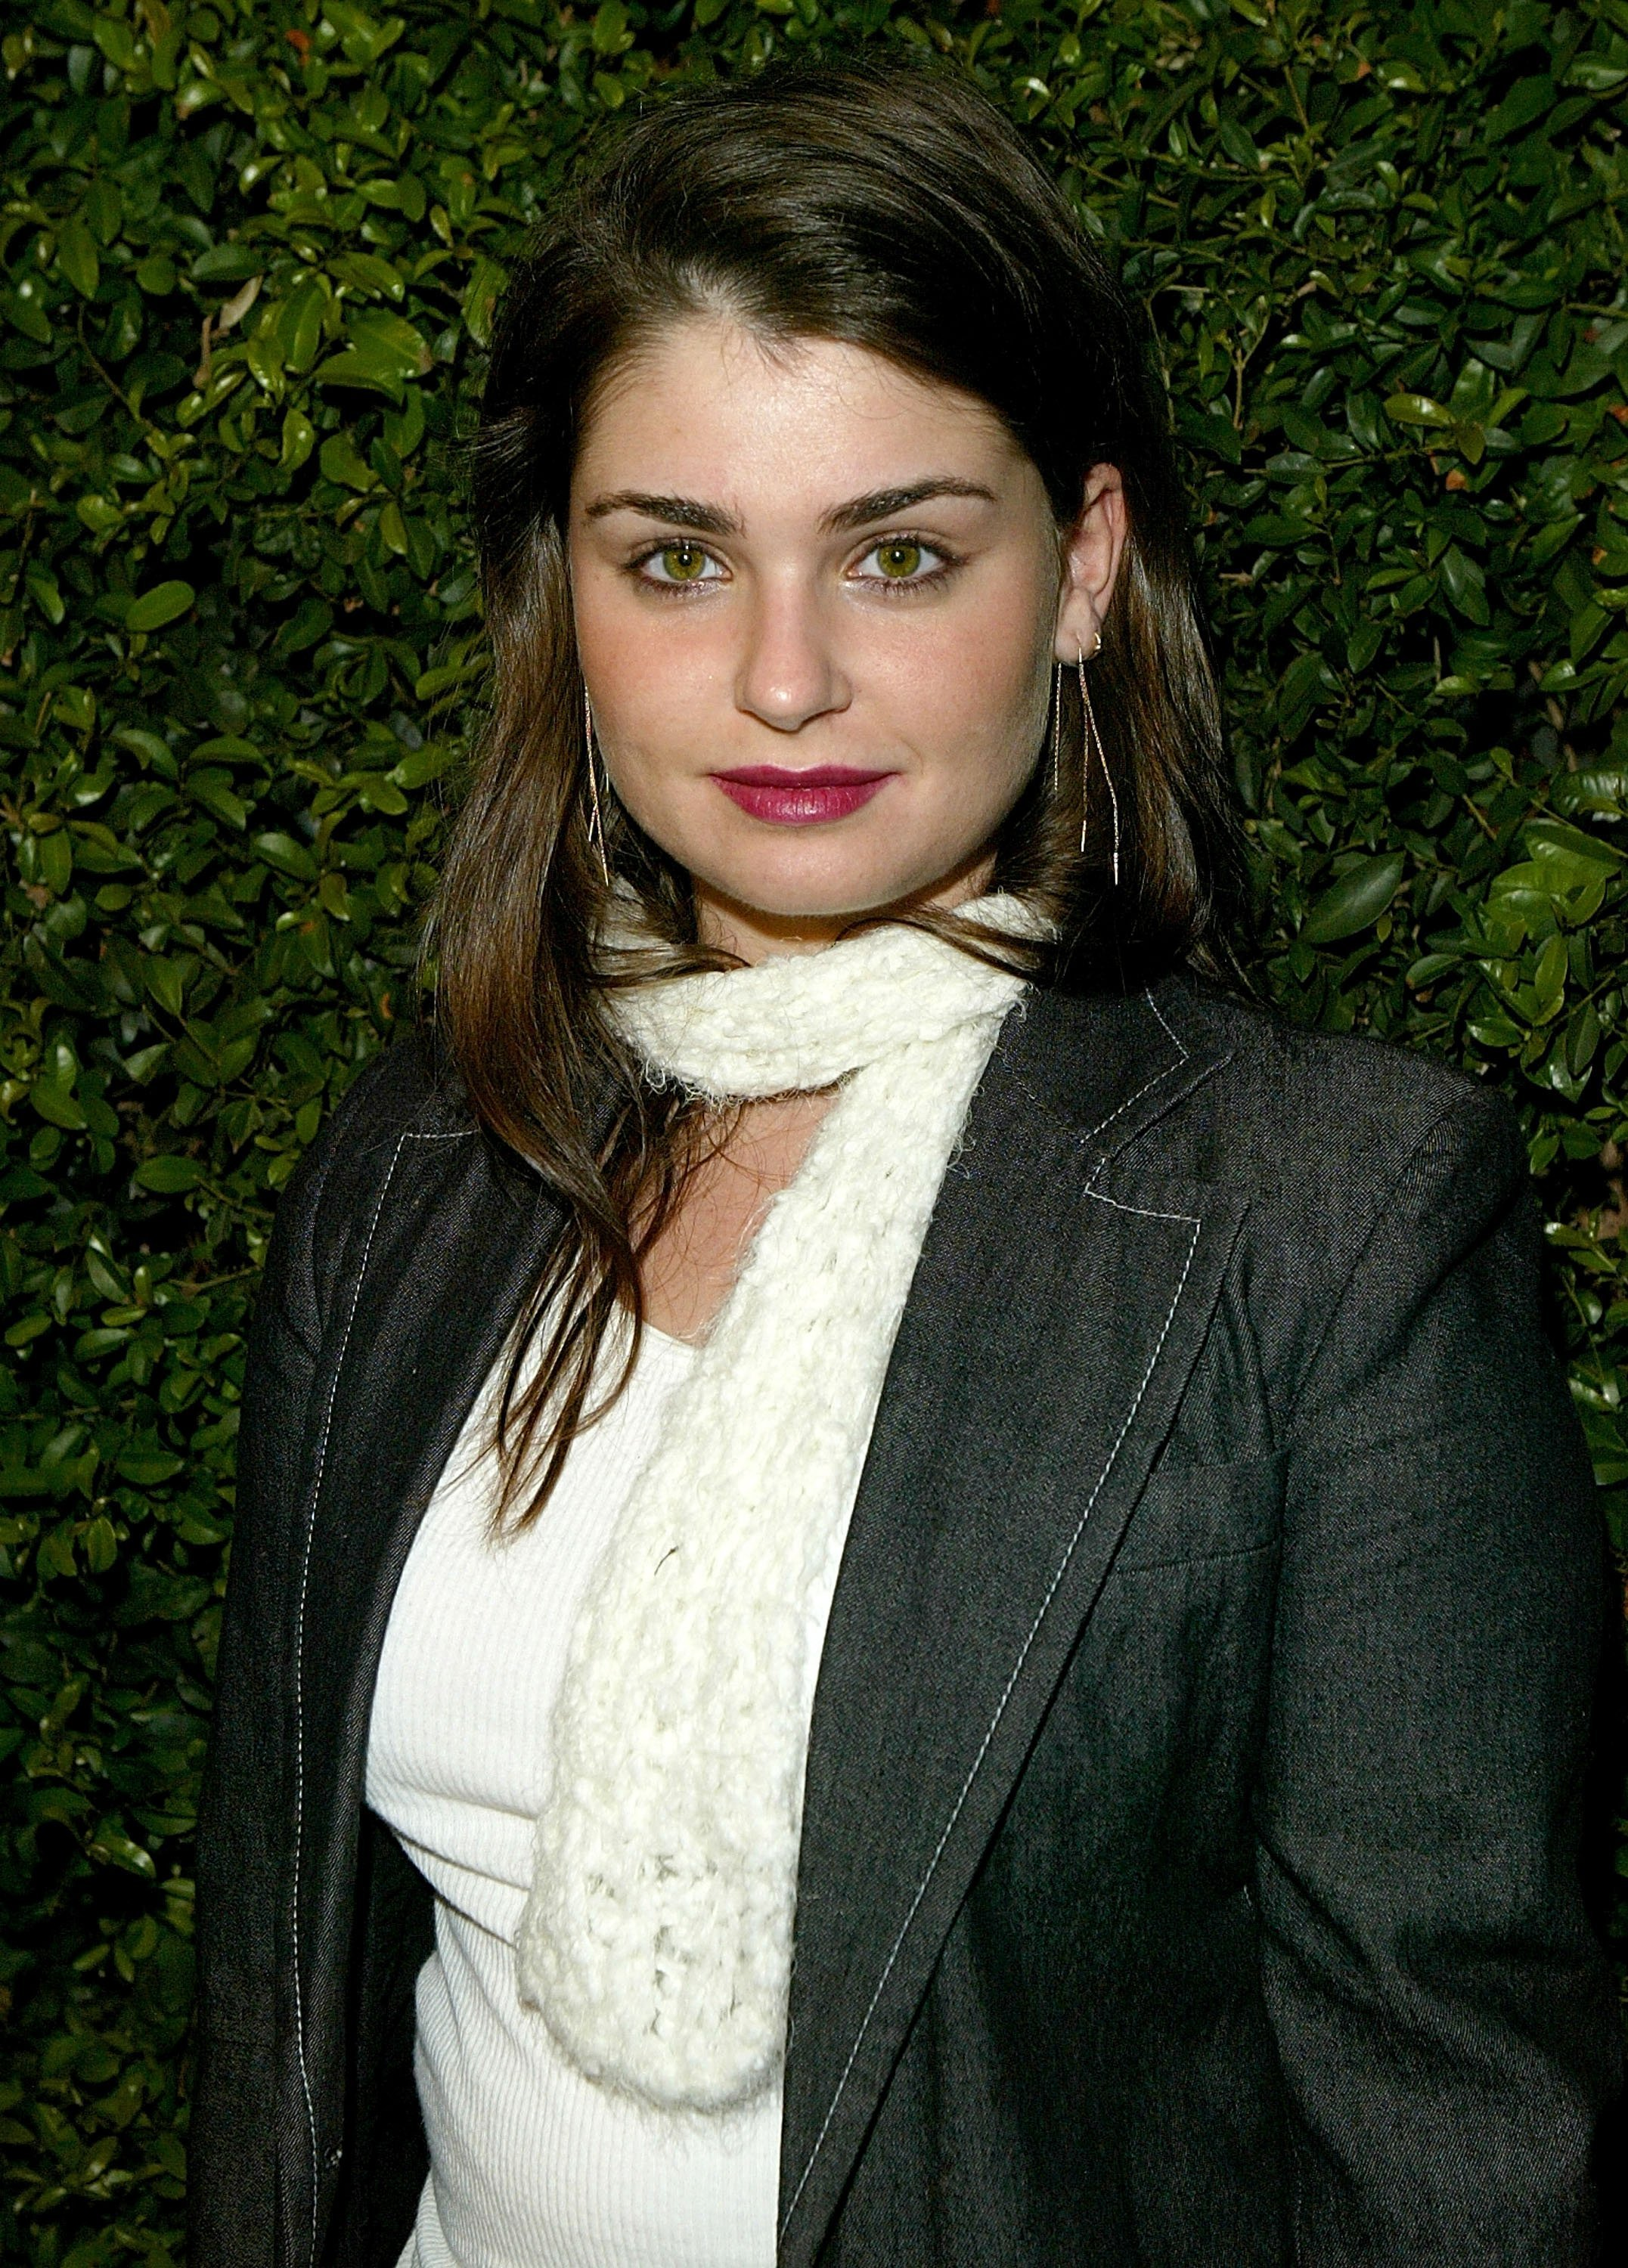 Aimee Osbourne attends the opening of the Stella McCartney store in Beverly Hills, California on September 28, 2003 | Photo: Getty Images